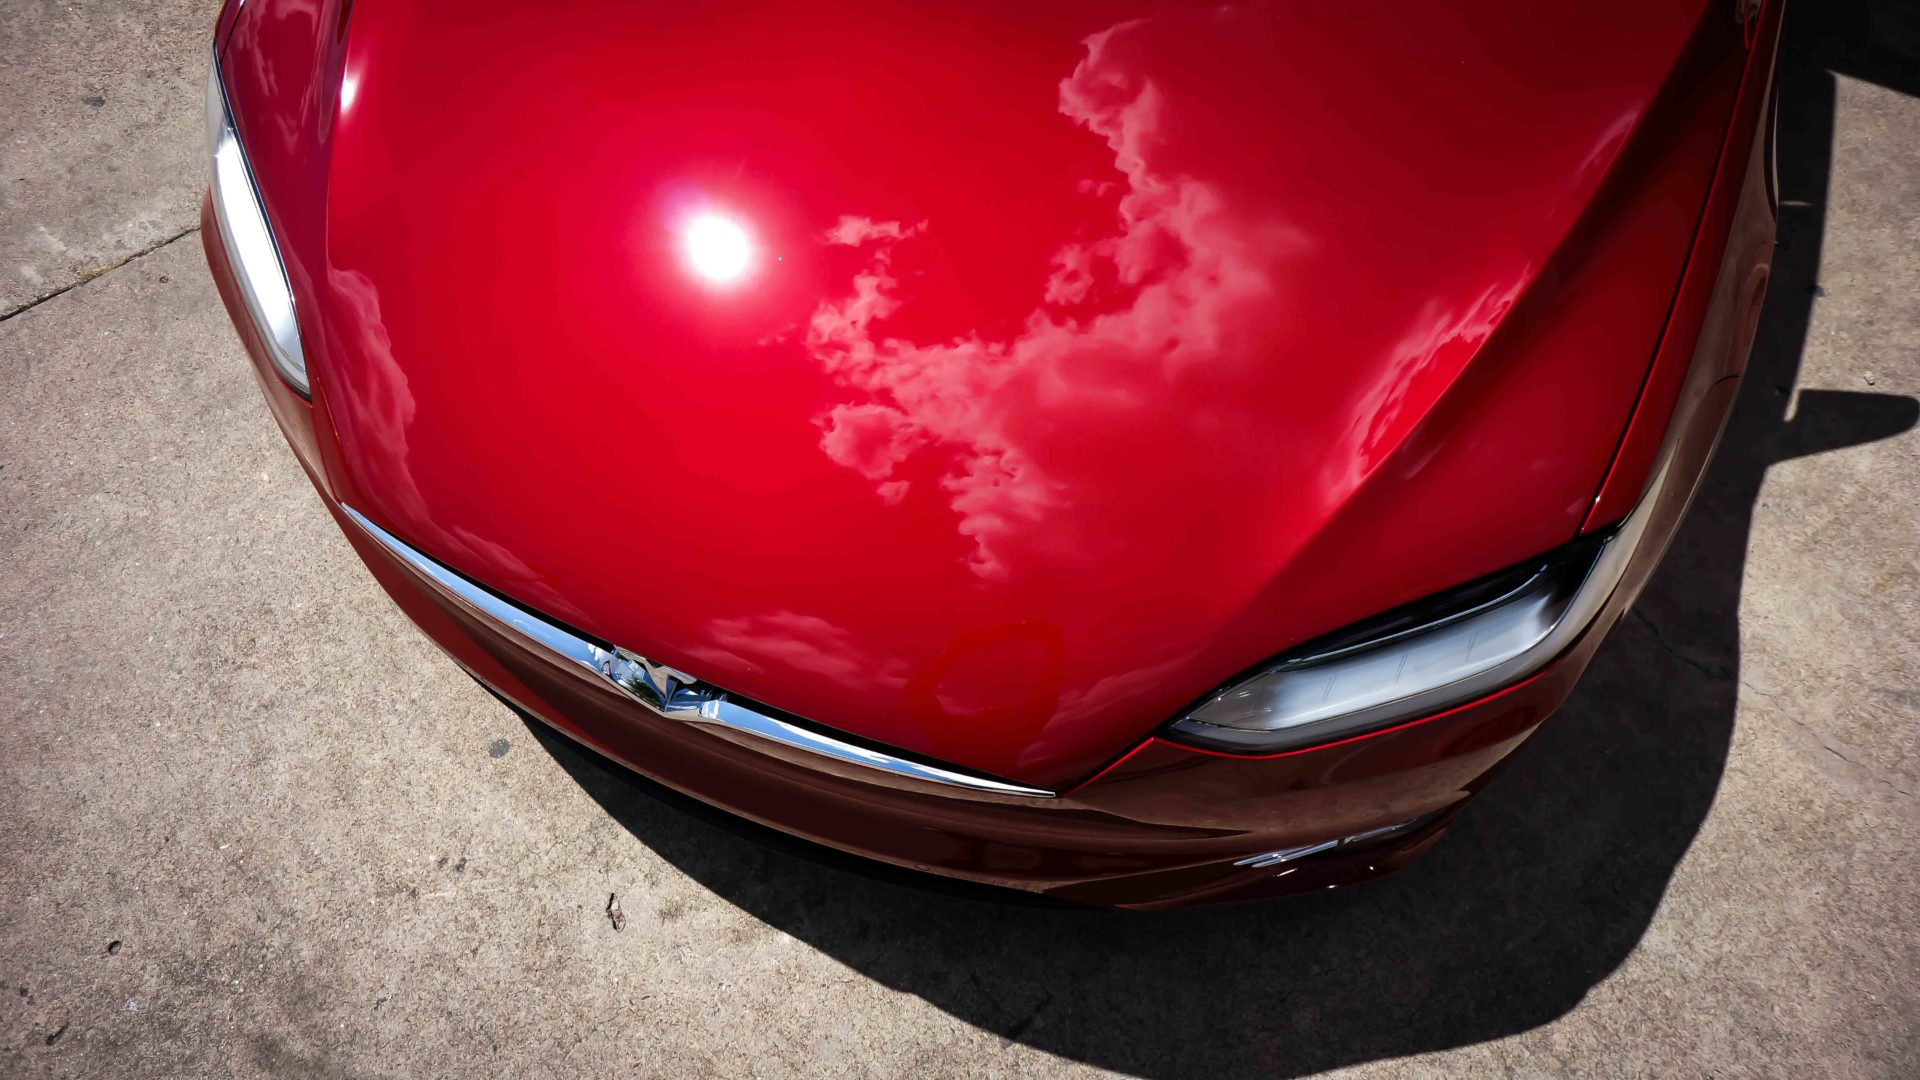 Paint Correction: Removing paint defects the right way